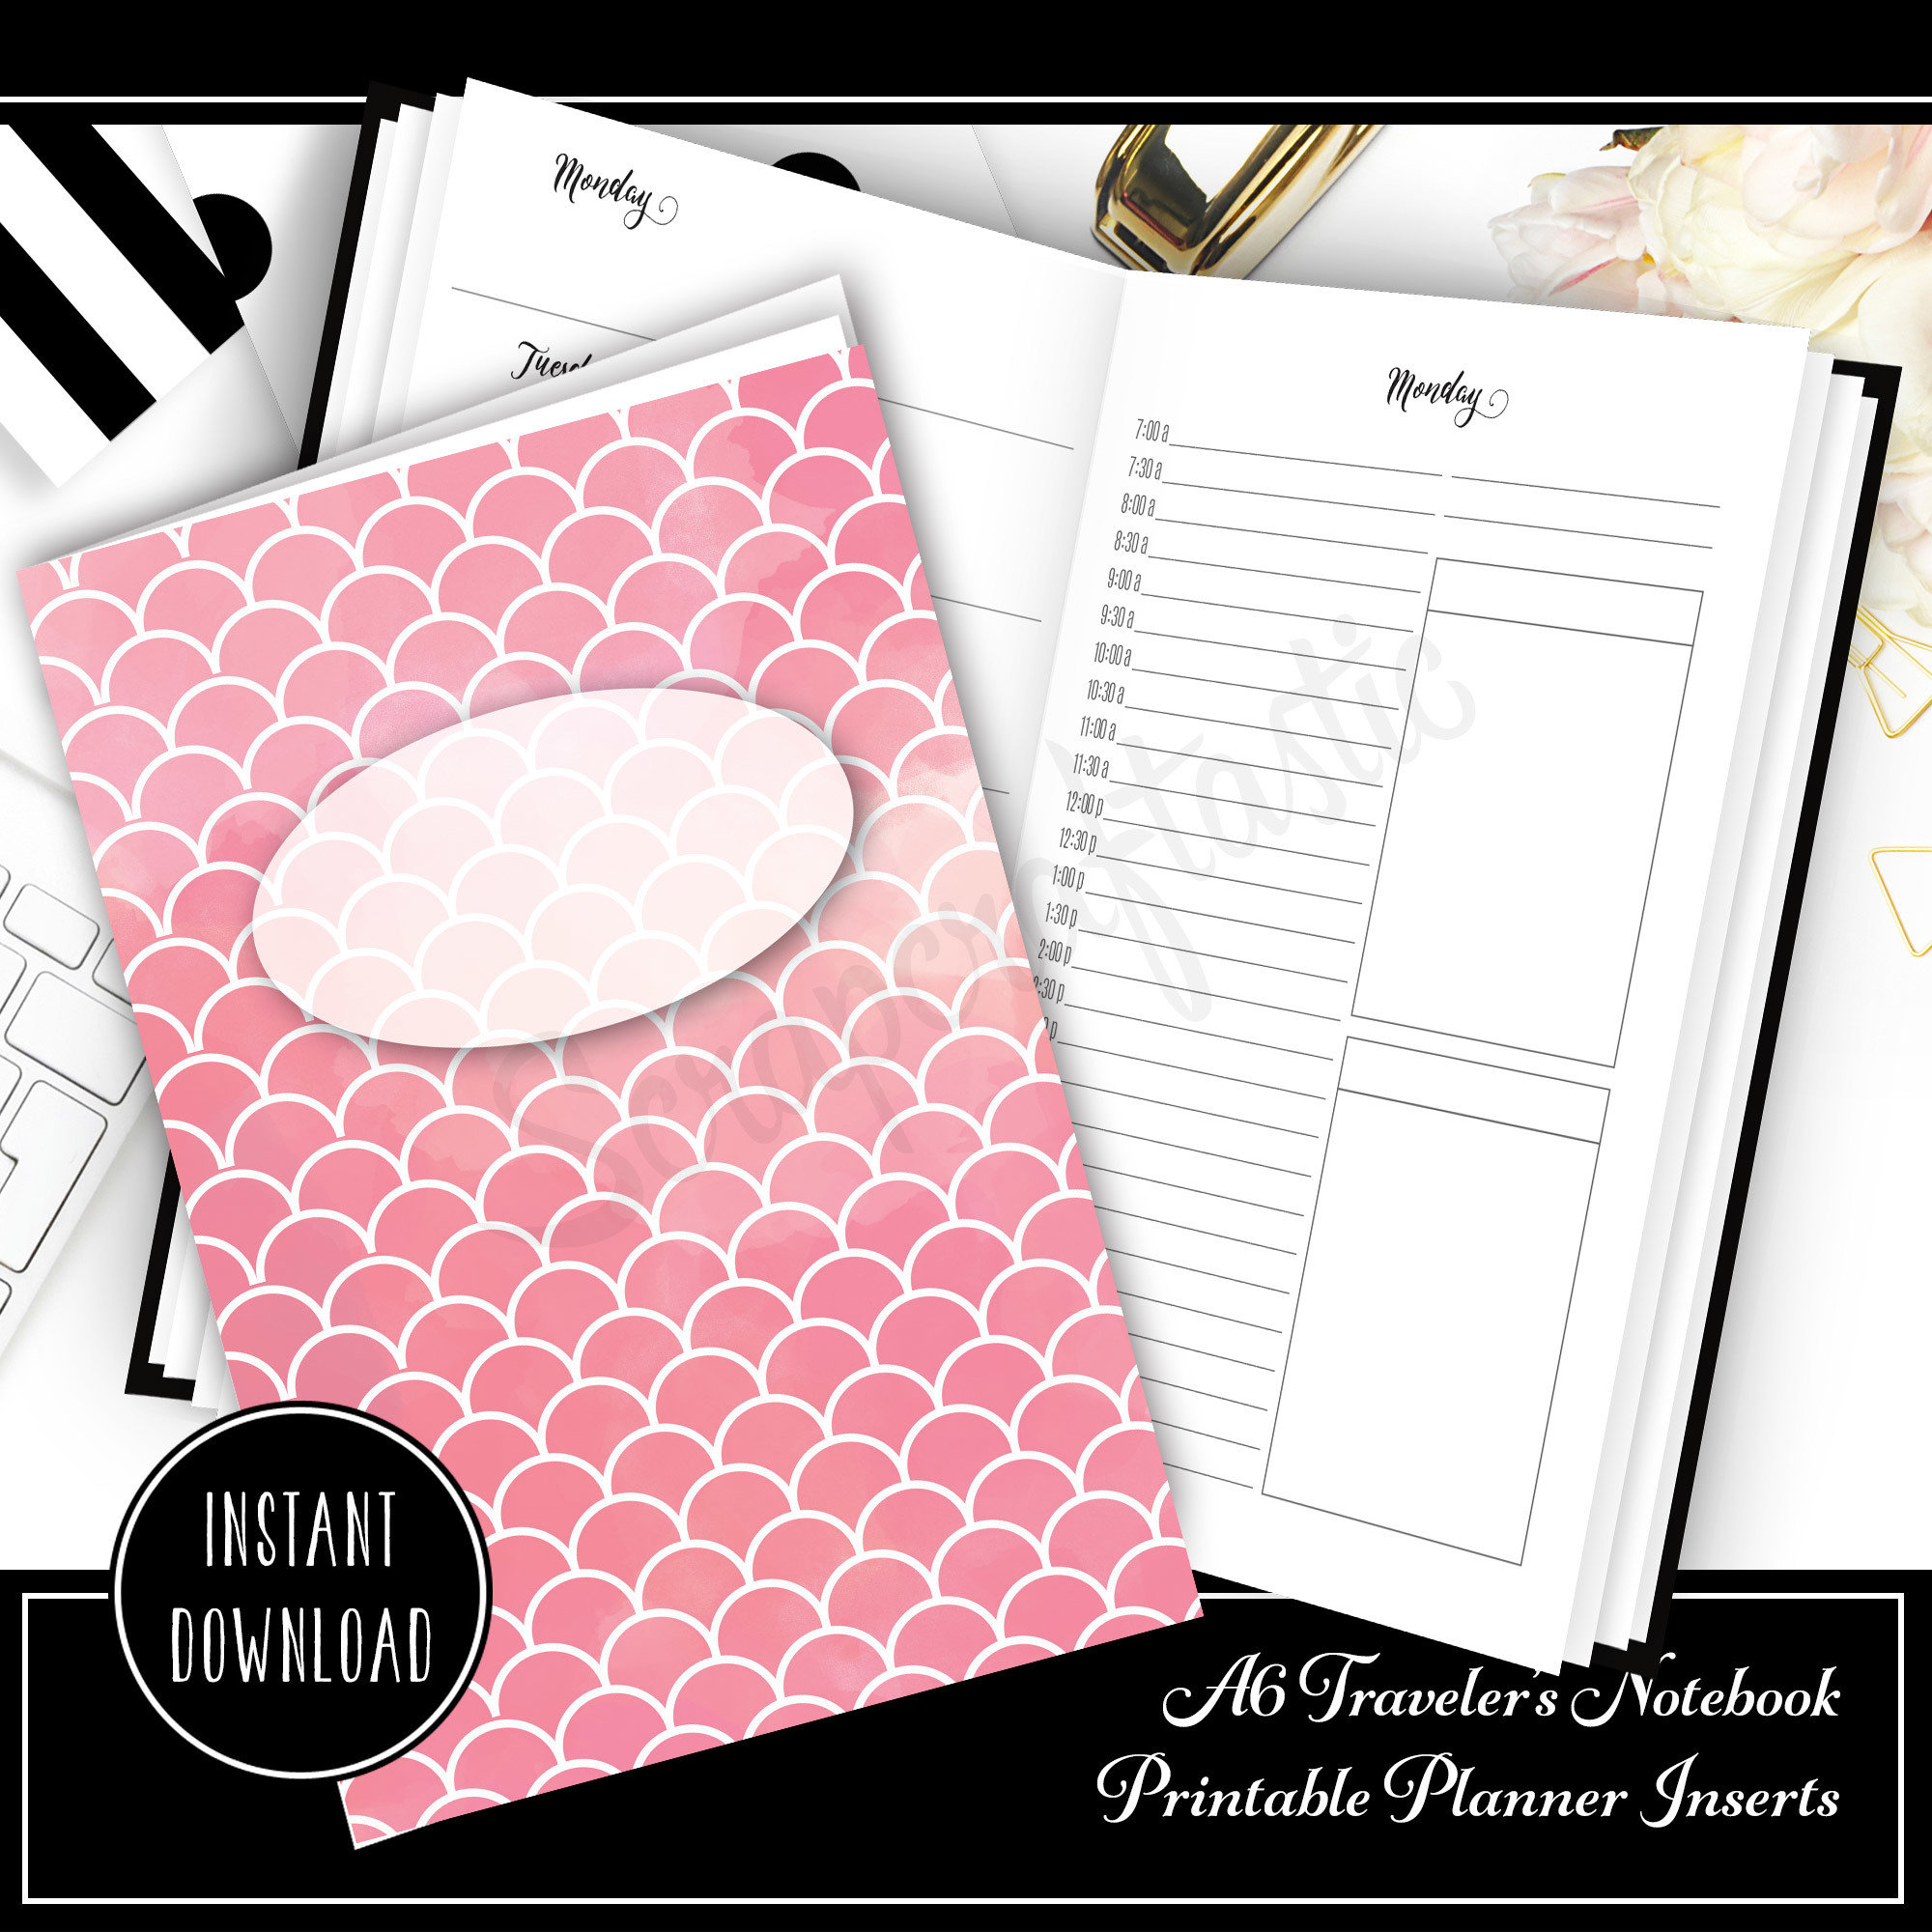 Full Month Notebook: Daily A6 Size with MO2P, WO1P Horizontal and DO1P Daily Schedule Pages Printable 40002